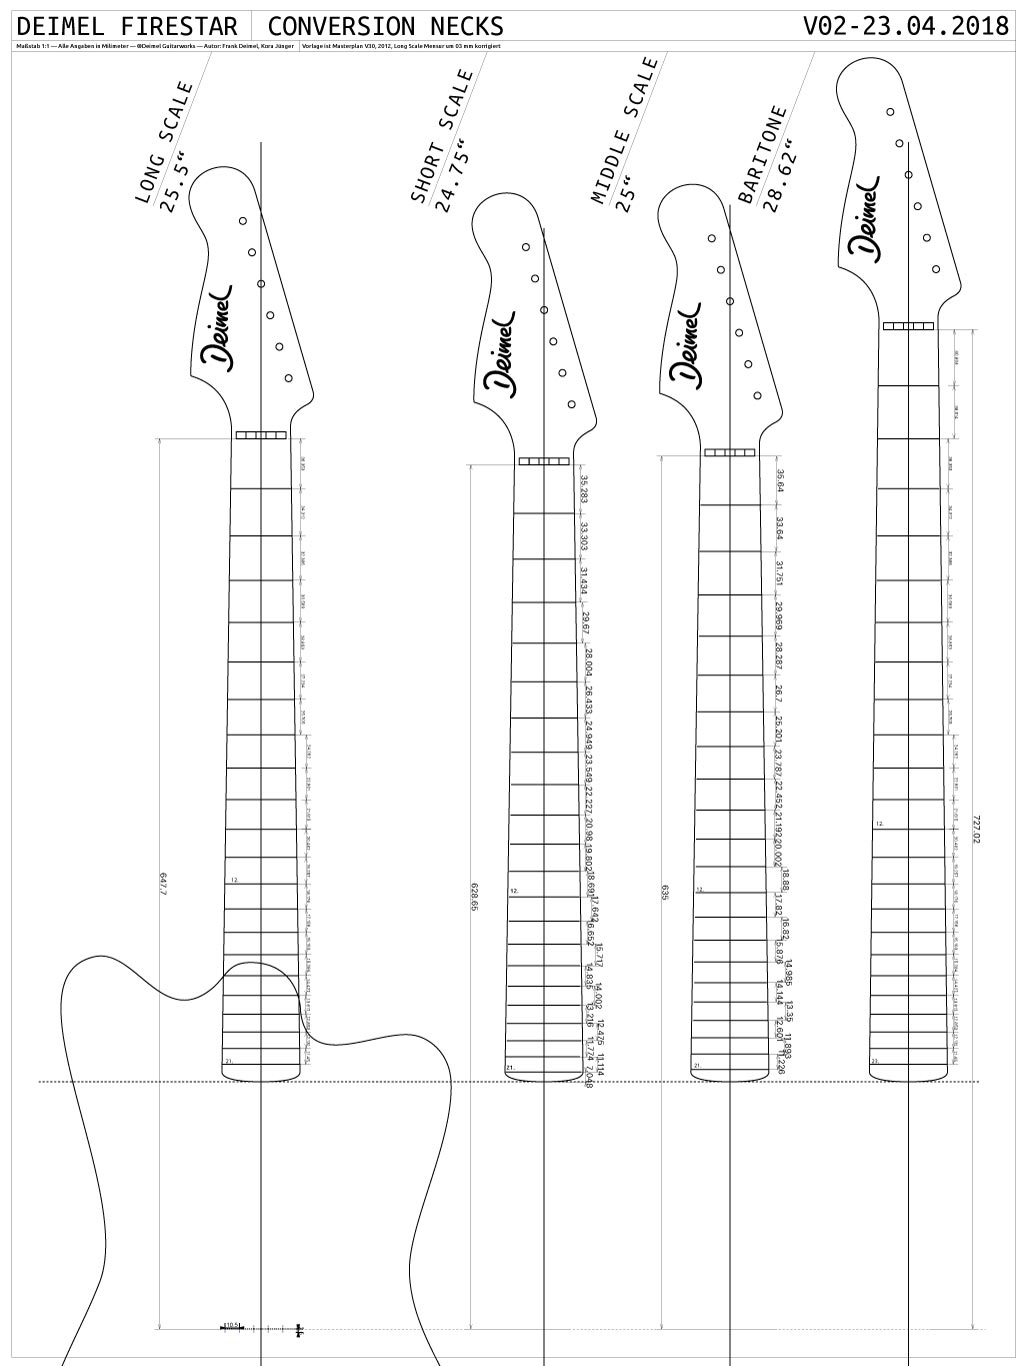 Deimel Firestar Conversion Necks